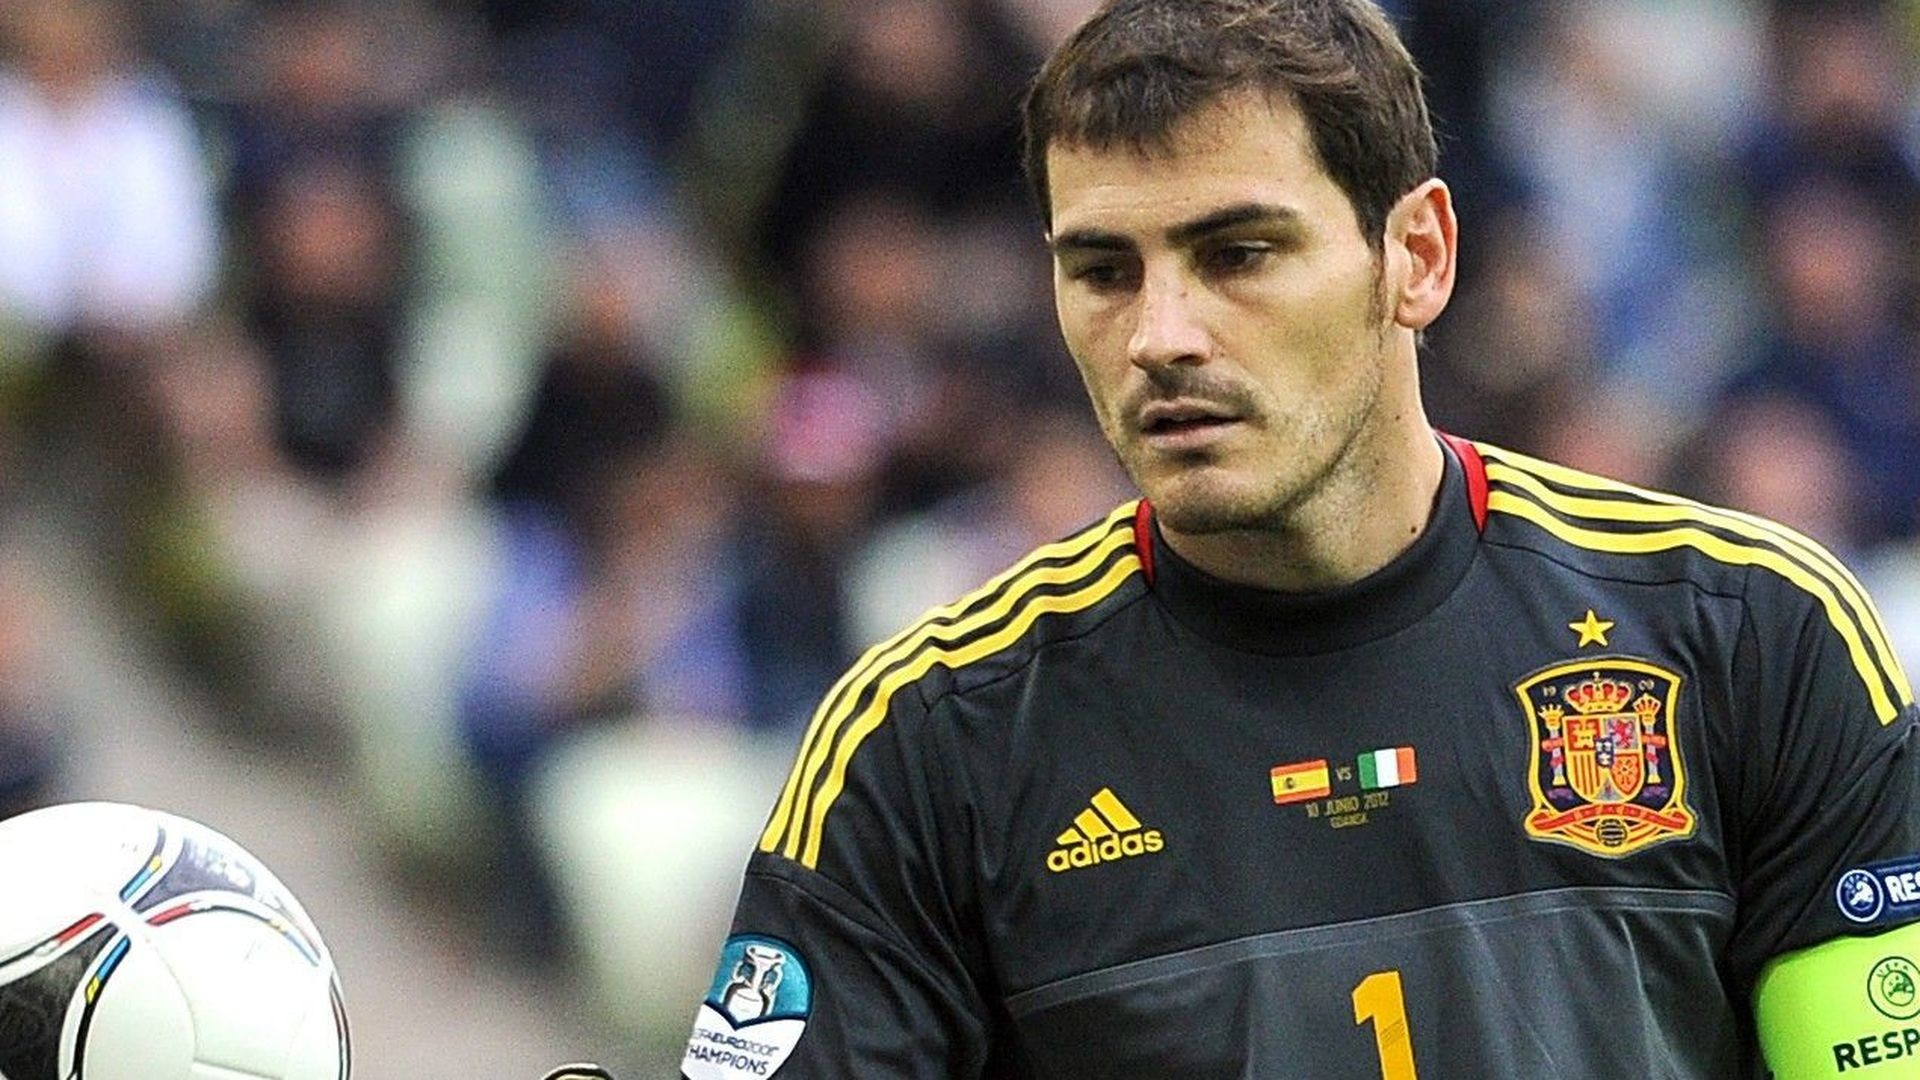 Manchester United Wallpaper Iphone X Iker Casillas Wallpapers 69 Images